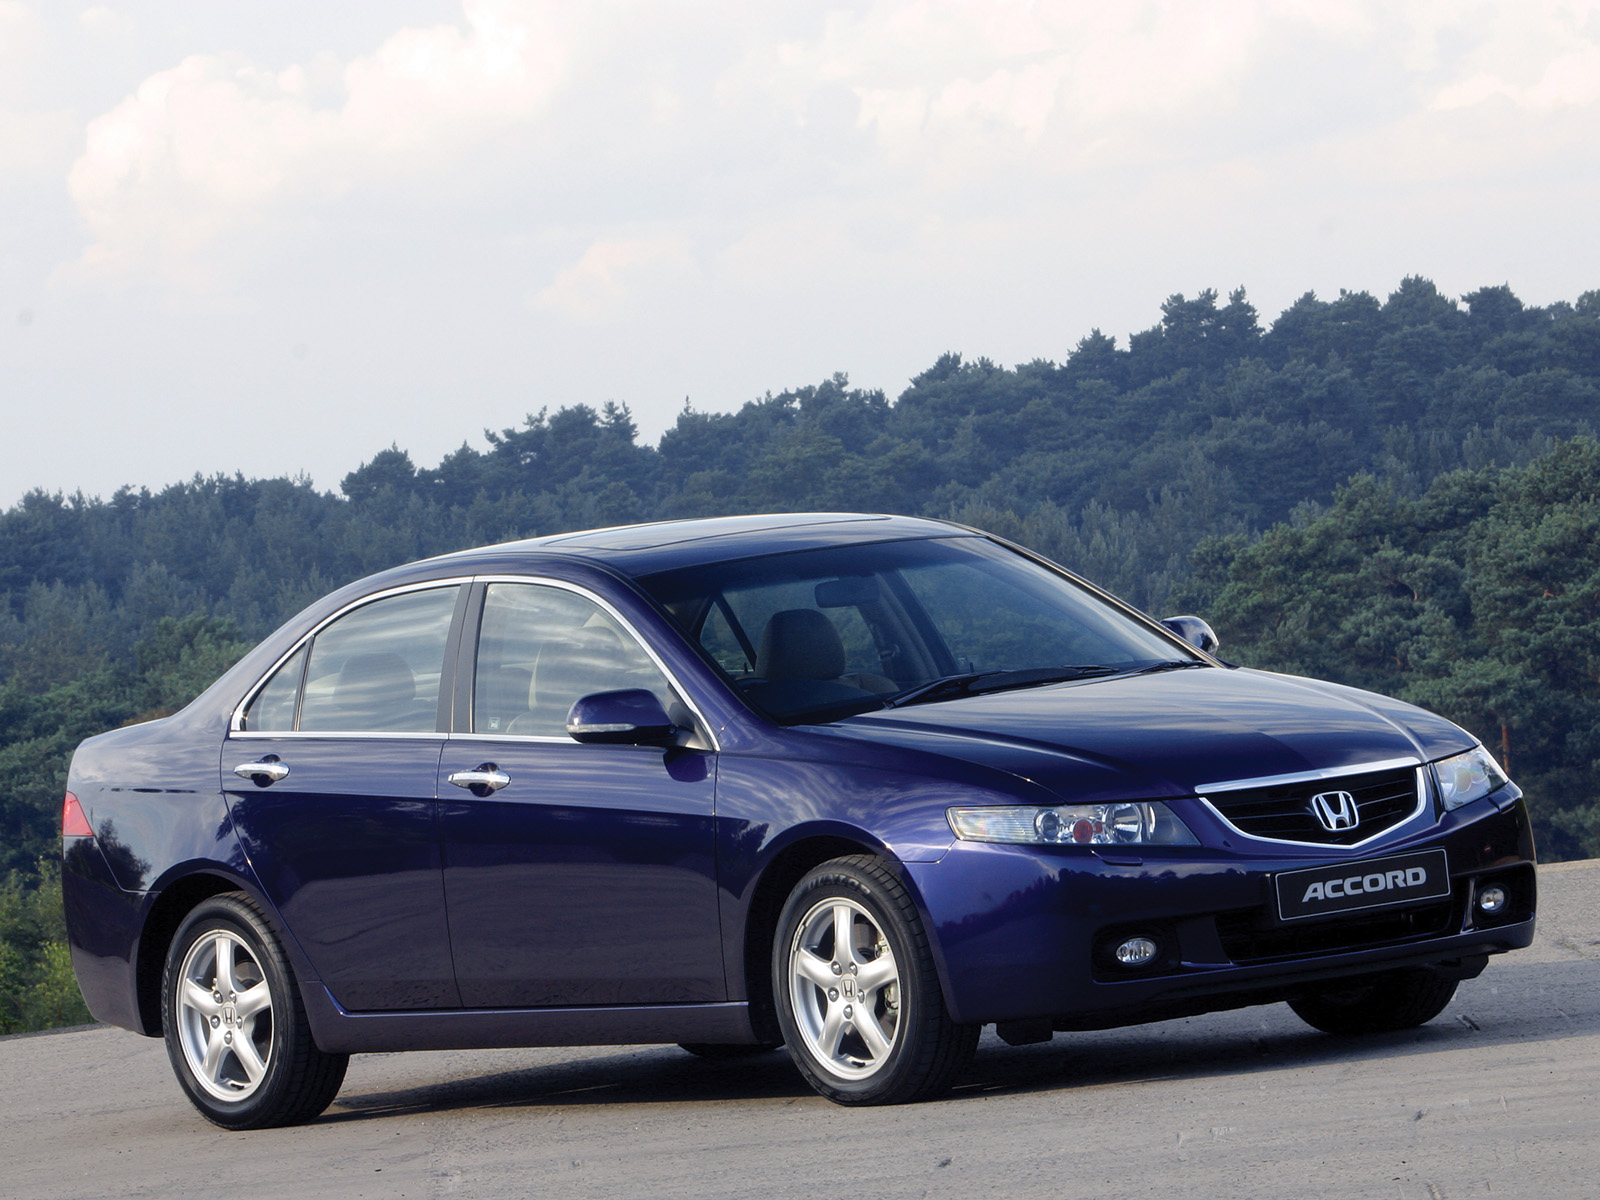 Which Cars Use Takata Airbags